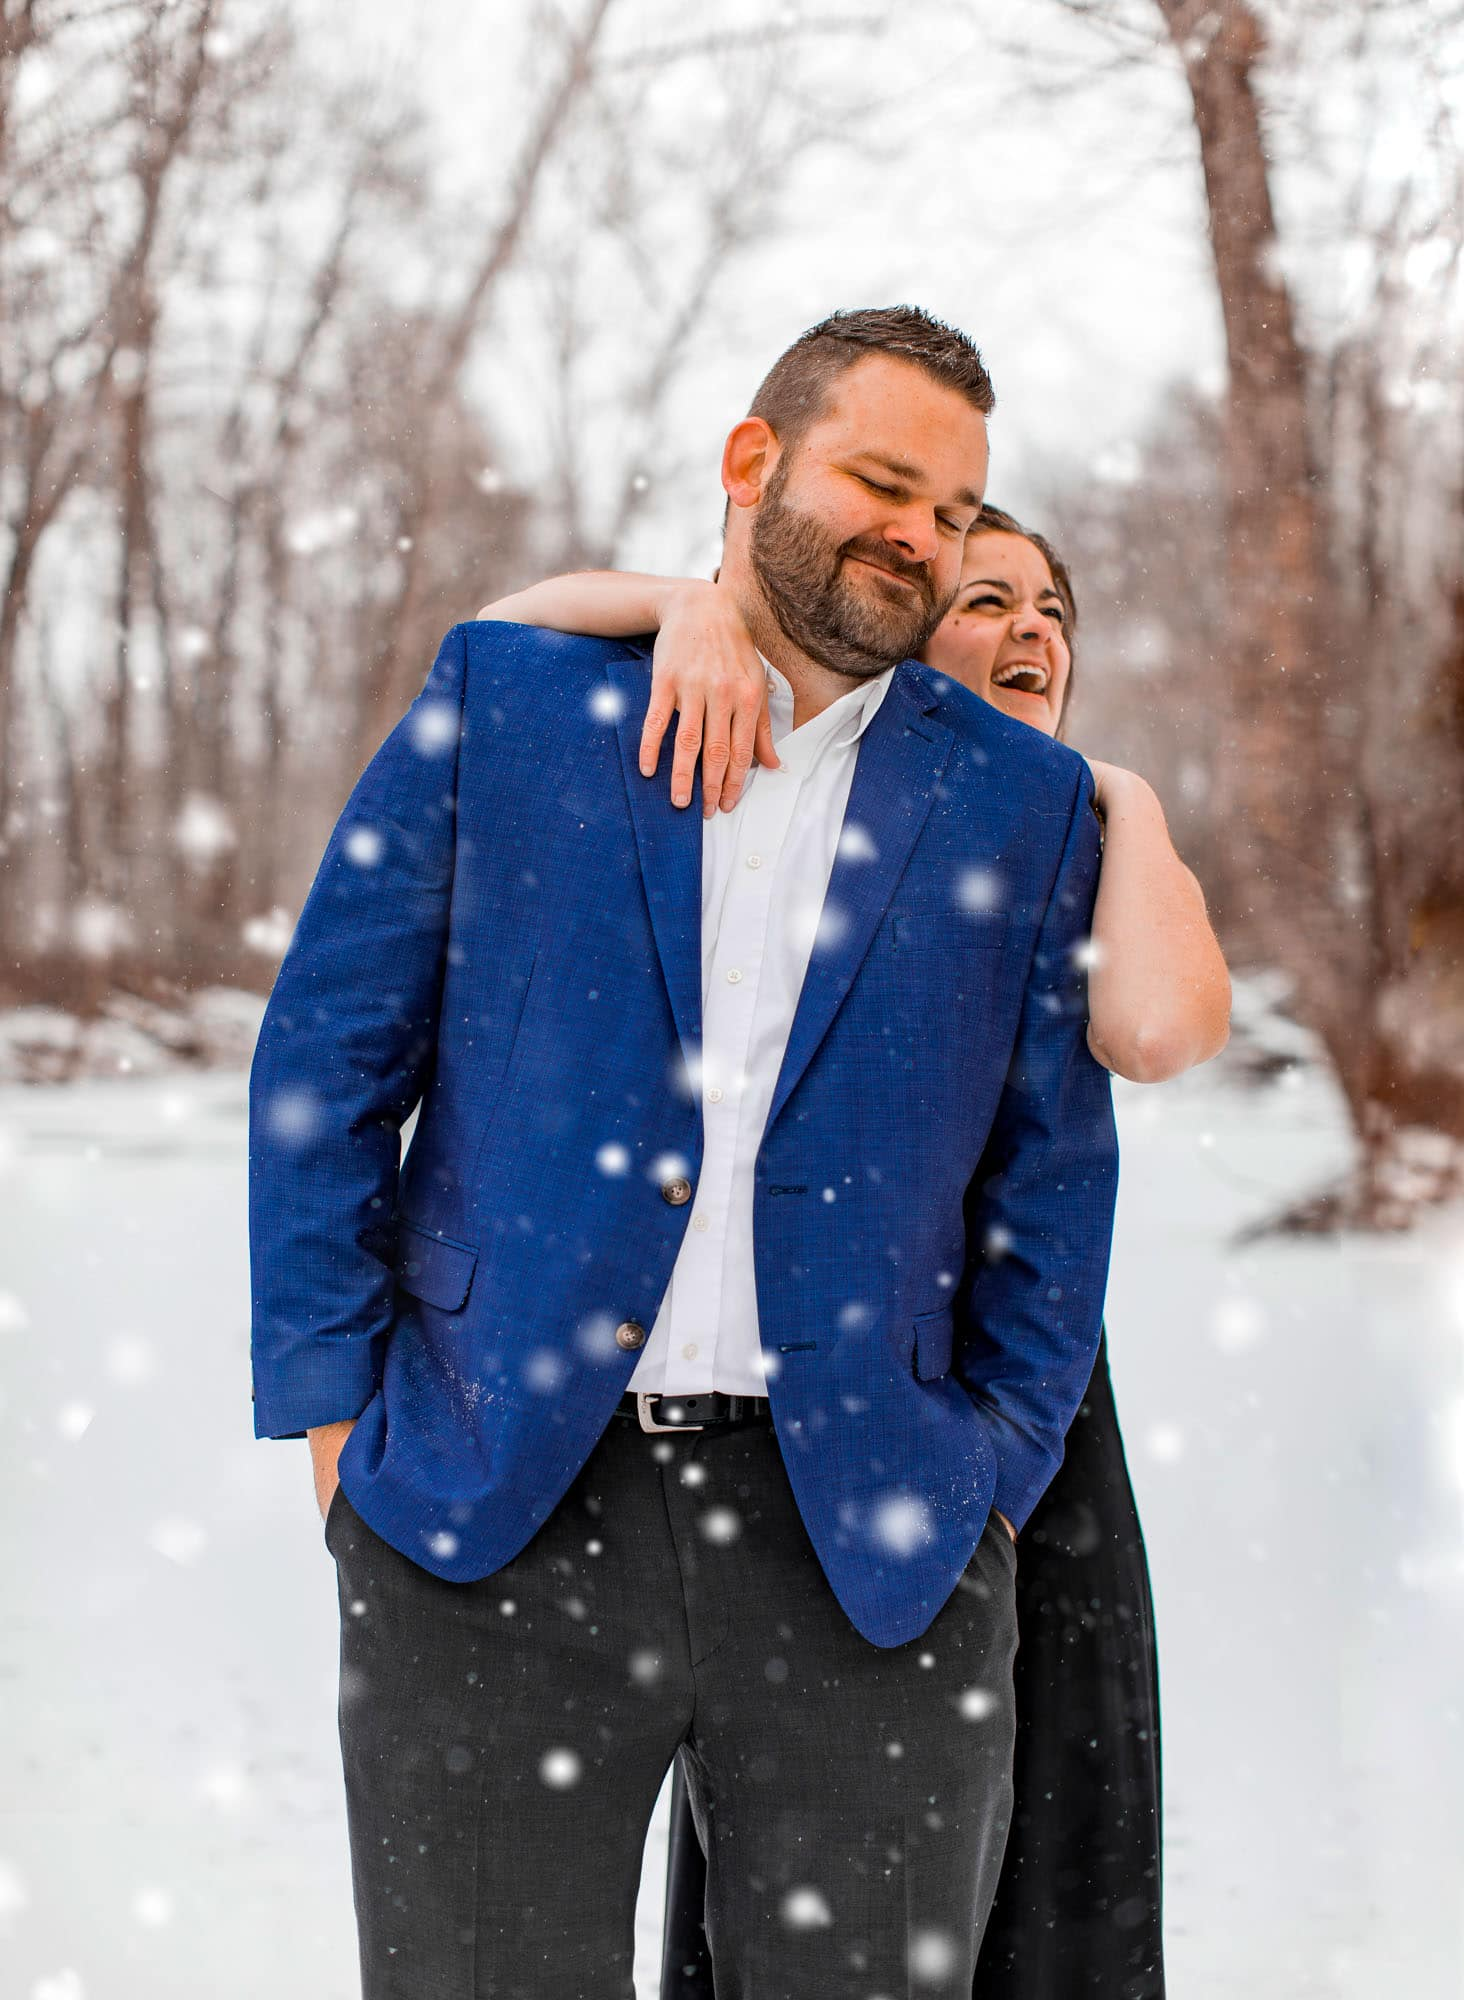 Kelly Heck and Adam Stultz Engagement Photos in Taneytown, Maryland in the snow on the ice